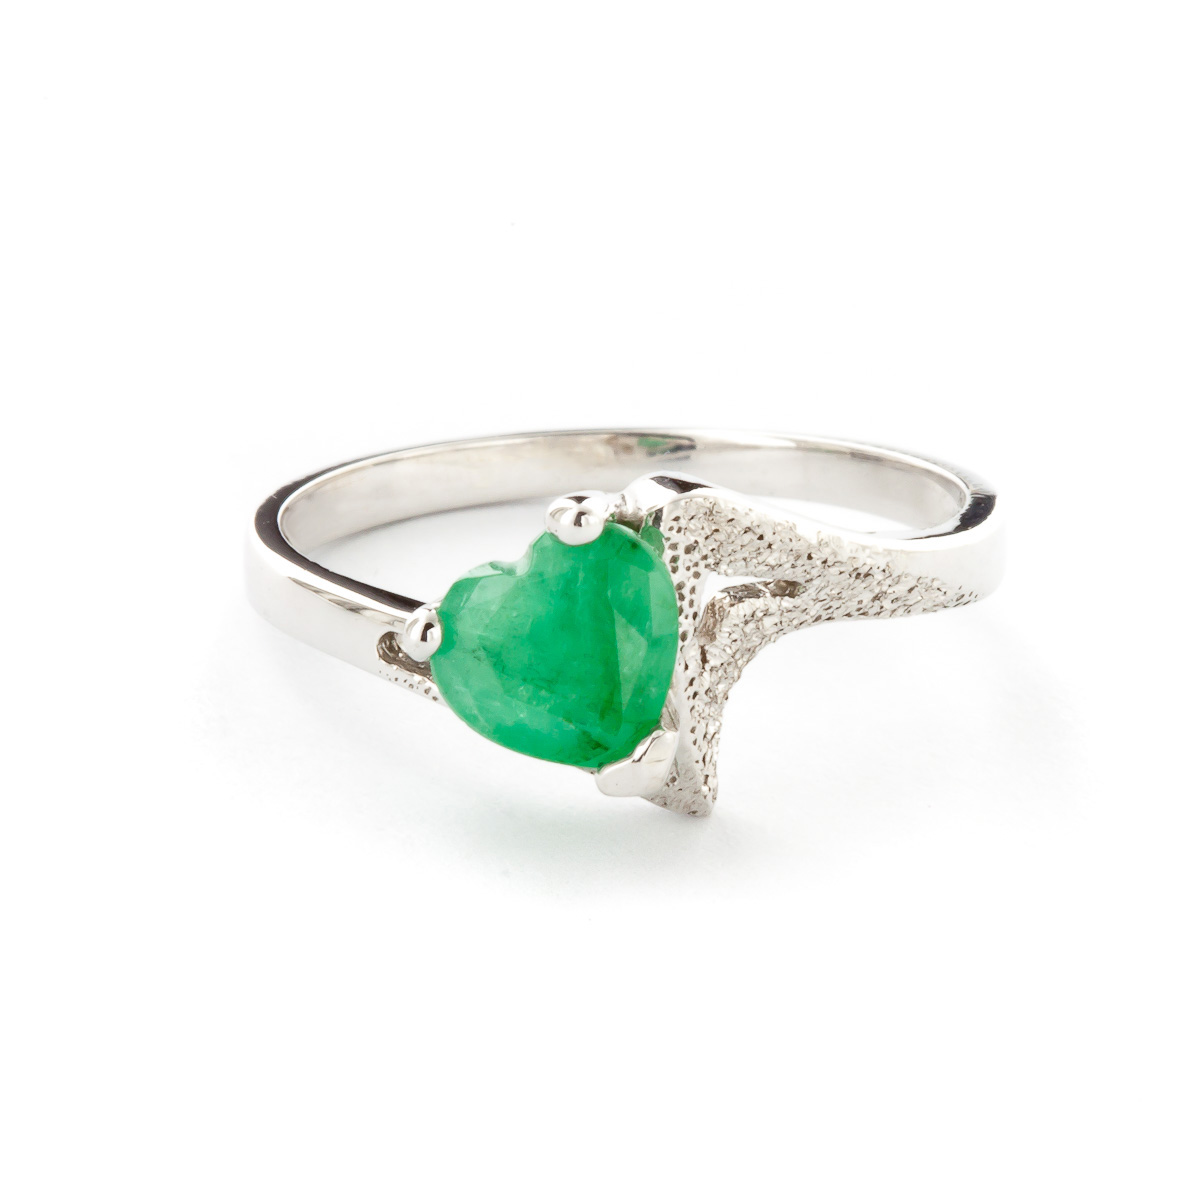 Emerald Devotion Ring 1 ct in 18ct White Gold